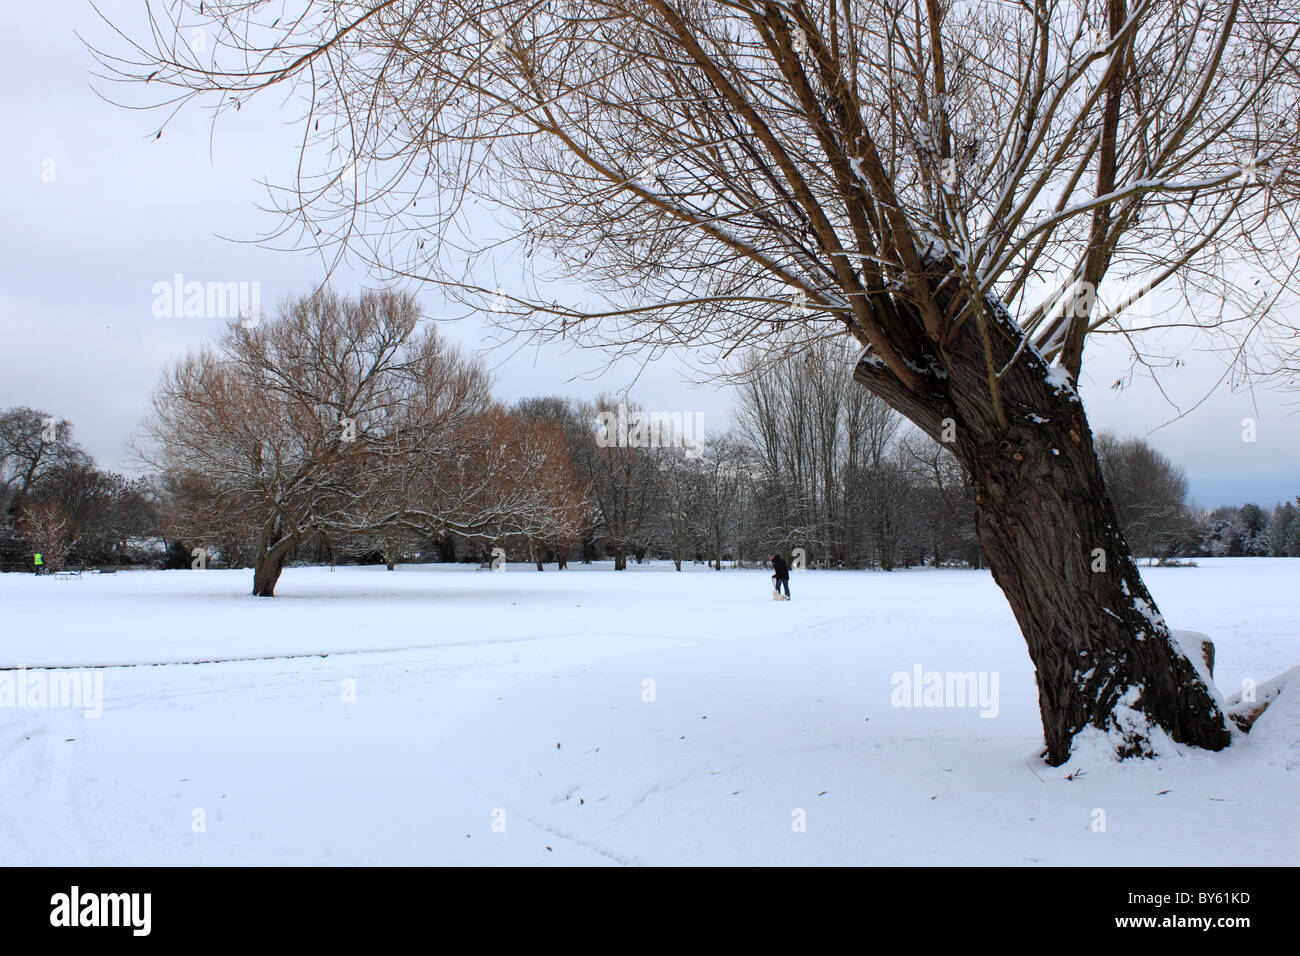 Walking dog in the snow, Hurst Meadows, Sadler's Ride, East Molesey, Surrey, England, Great Britain, United - Stock Image